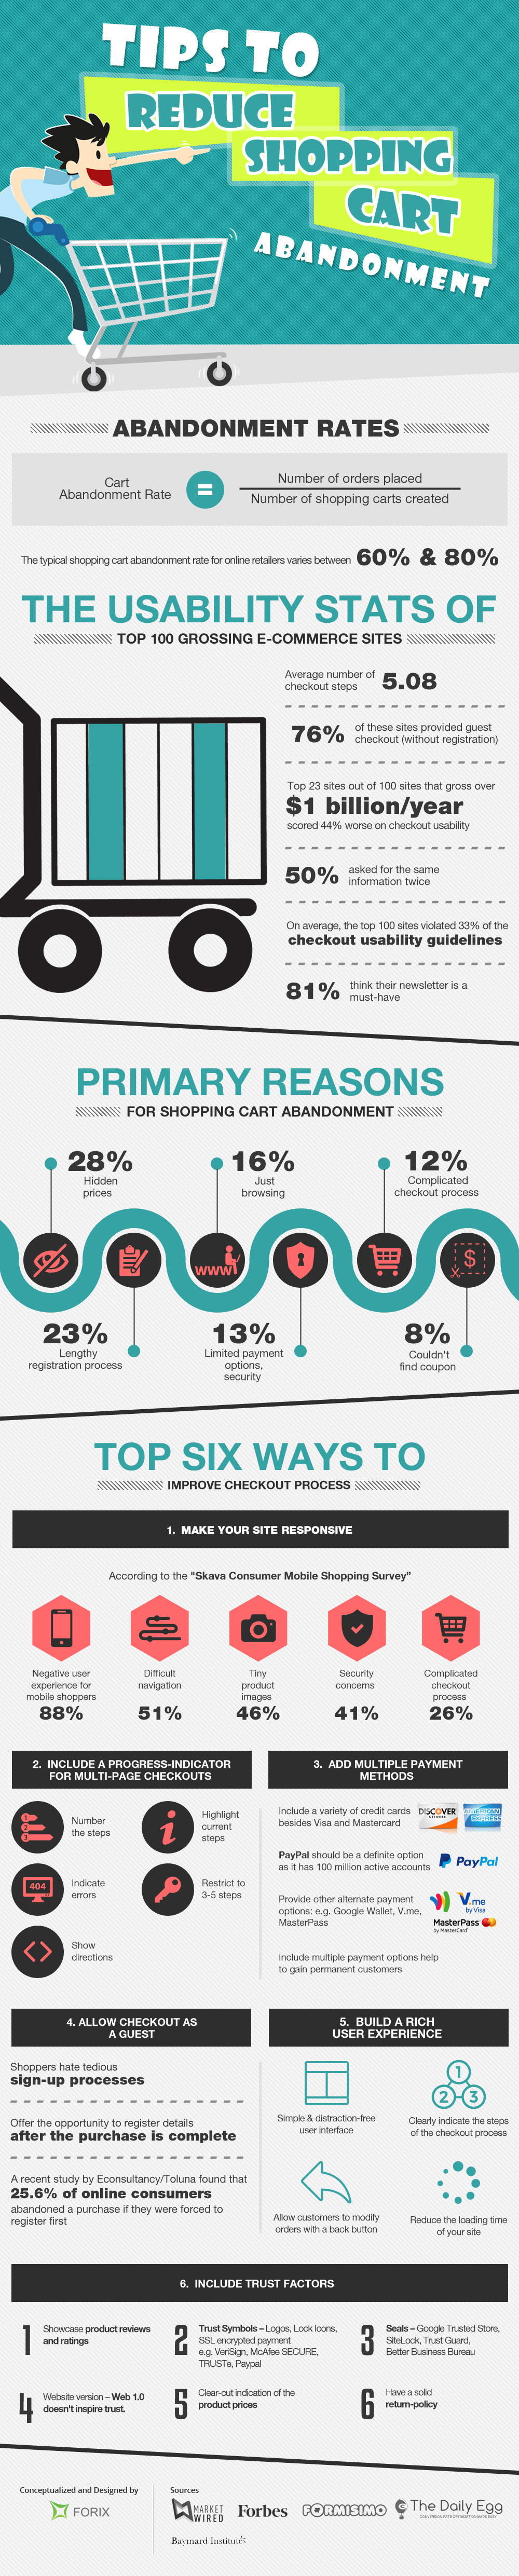 Tips to Reduce Shopping Cart Abandonment